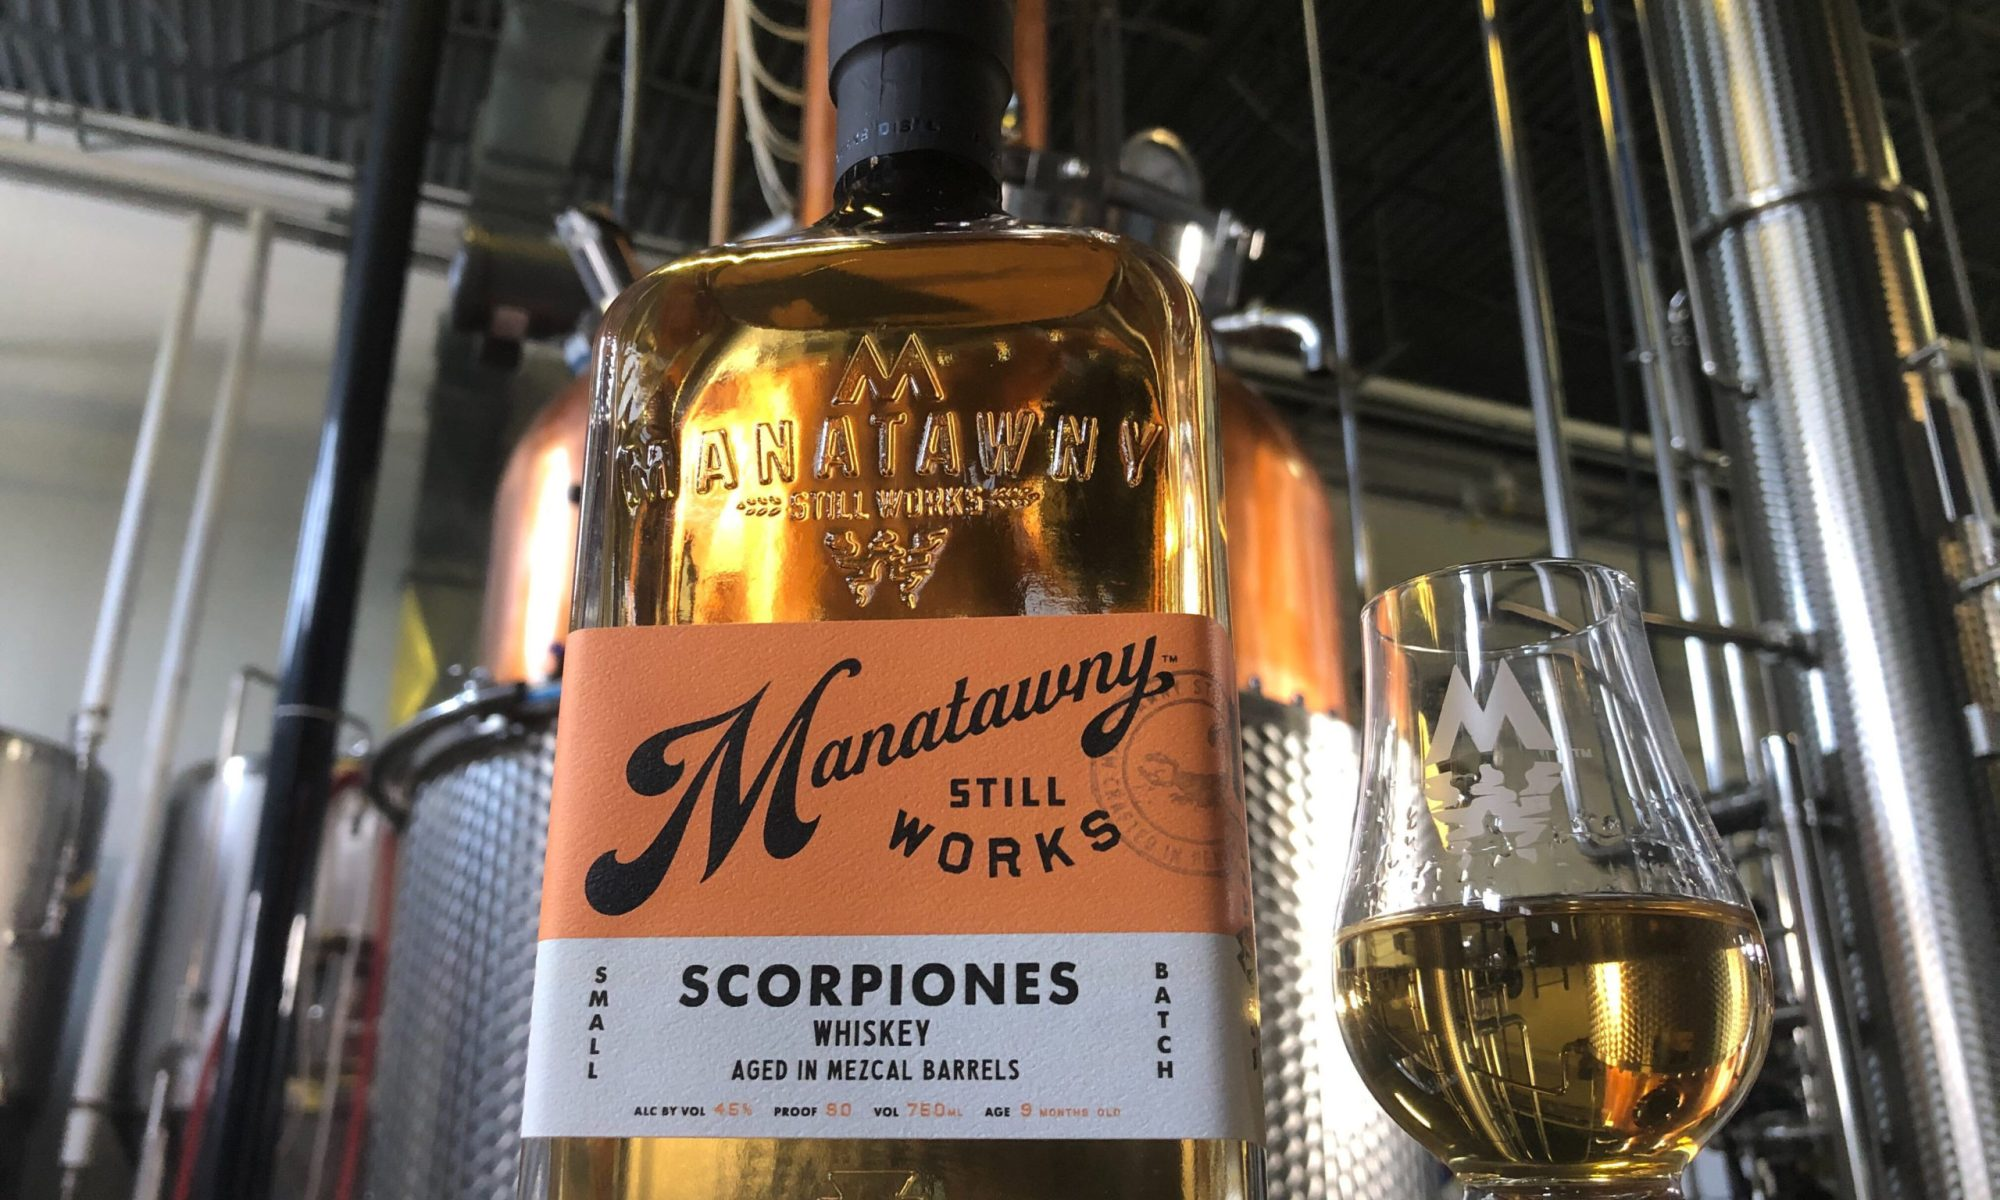 Manatawny Scorpiones Whiskey in Mezcal Barrels